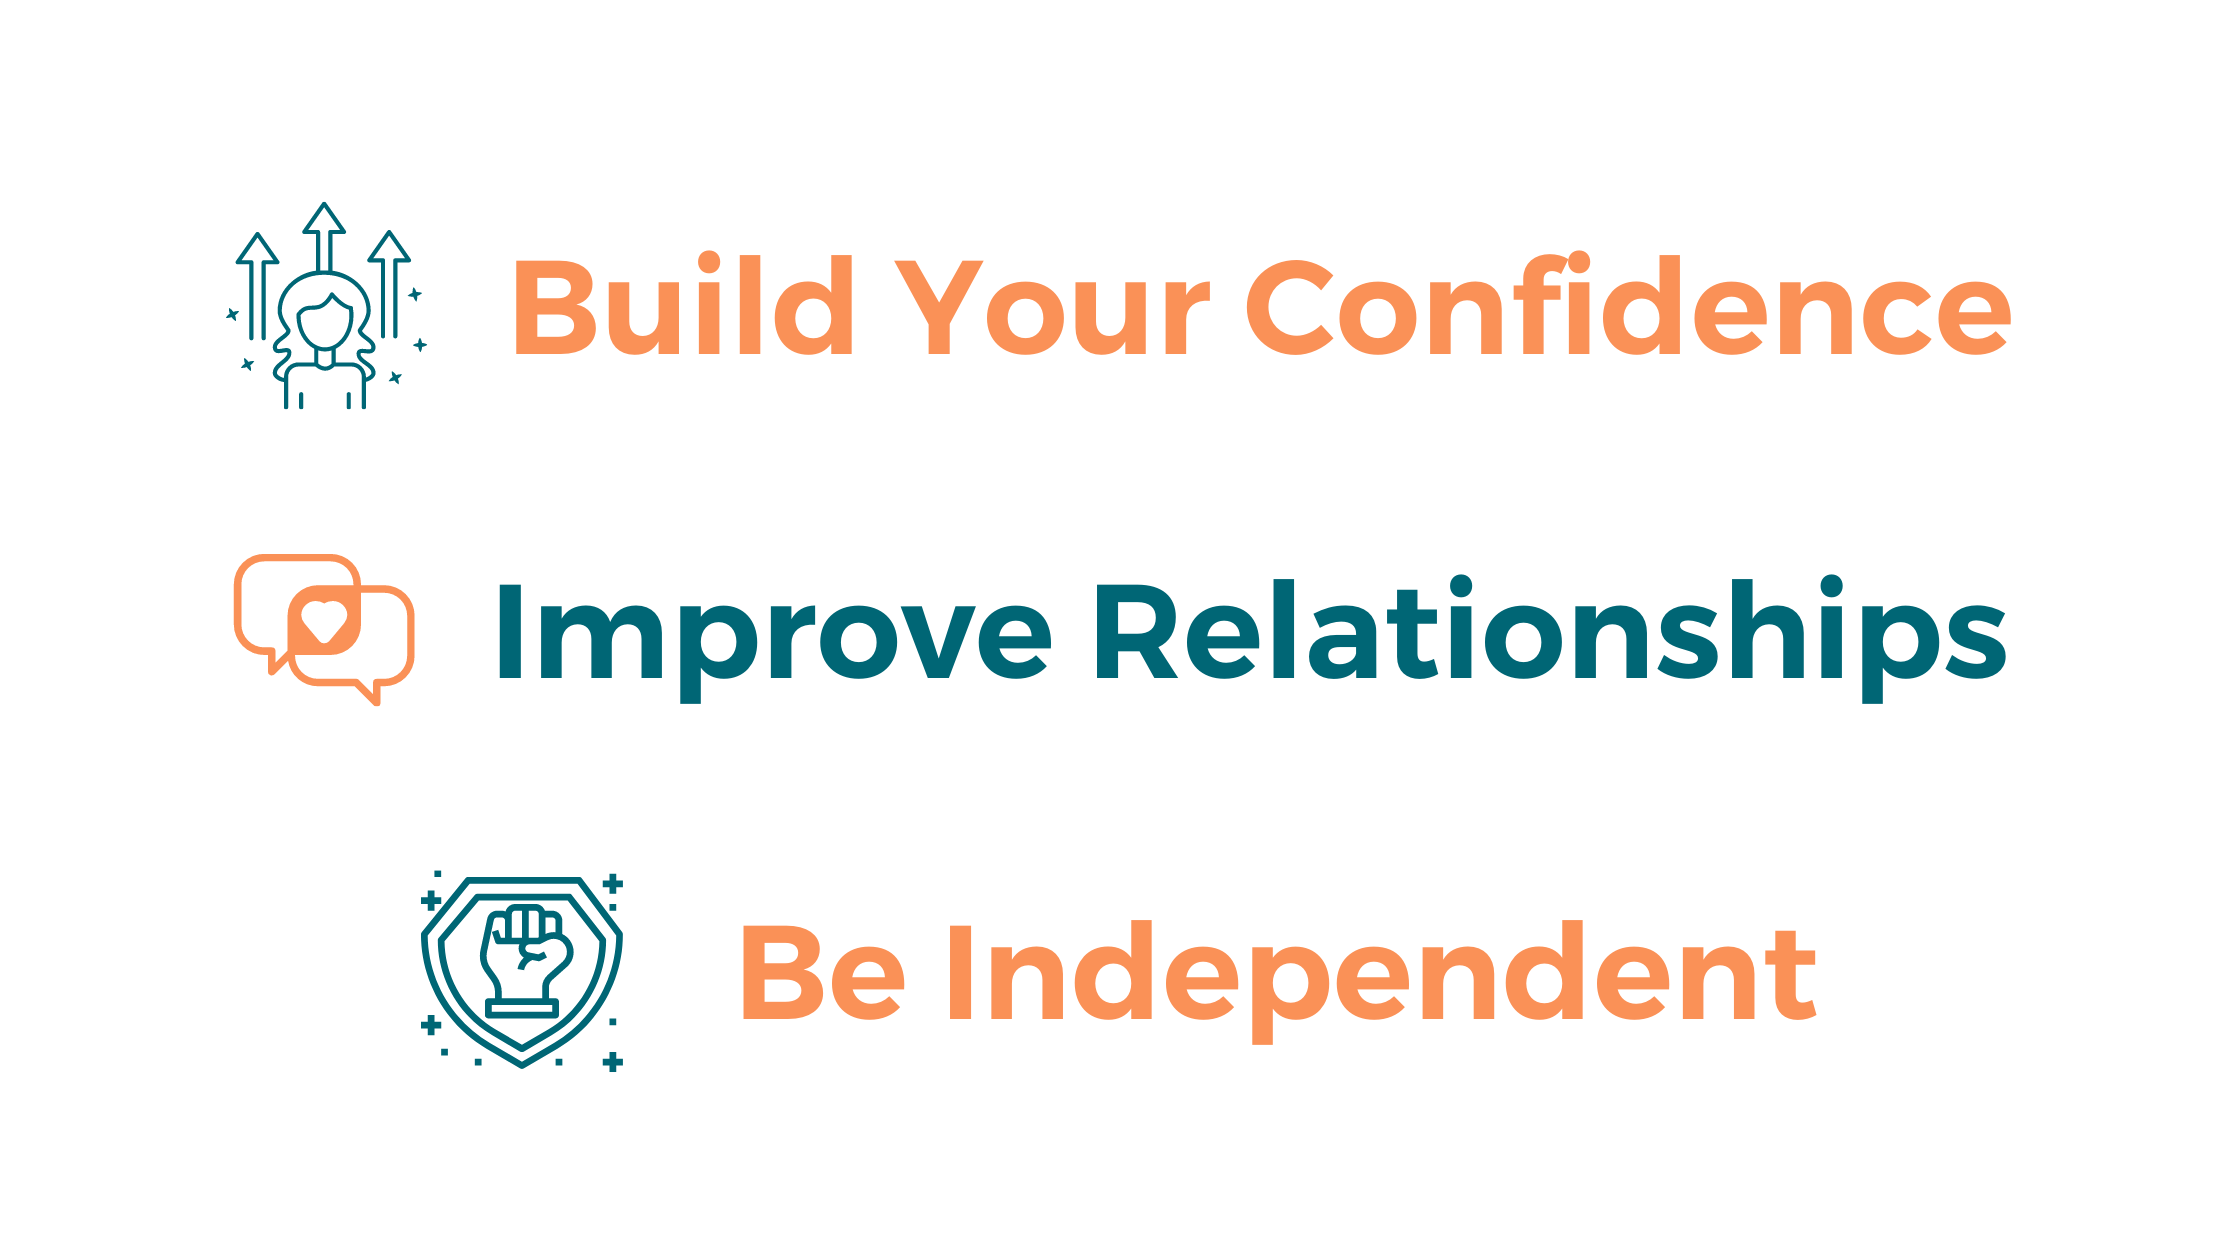 Build your confidence, improve relationships, and be independent